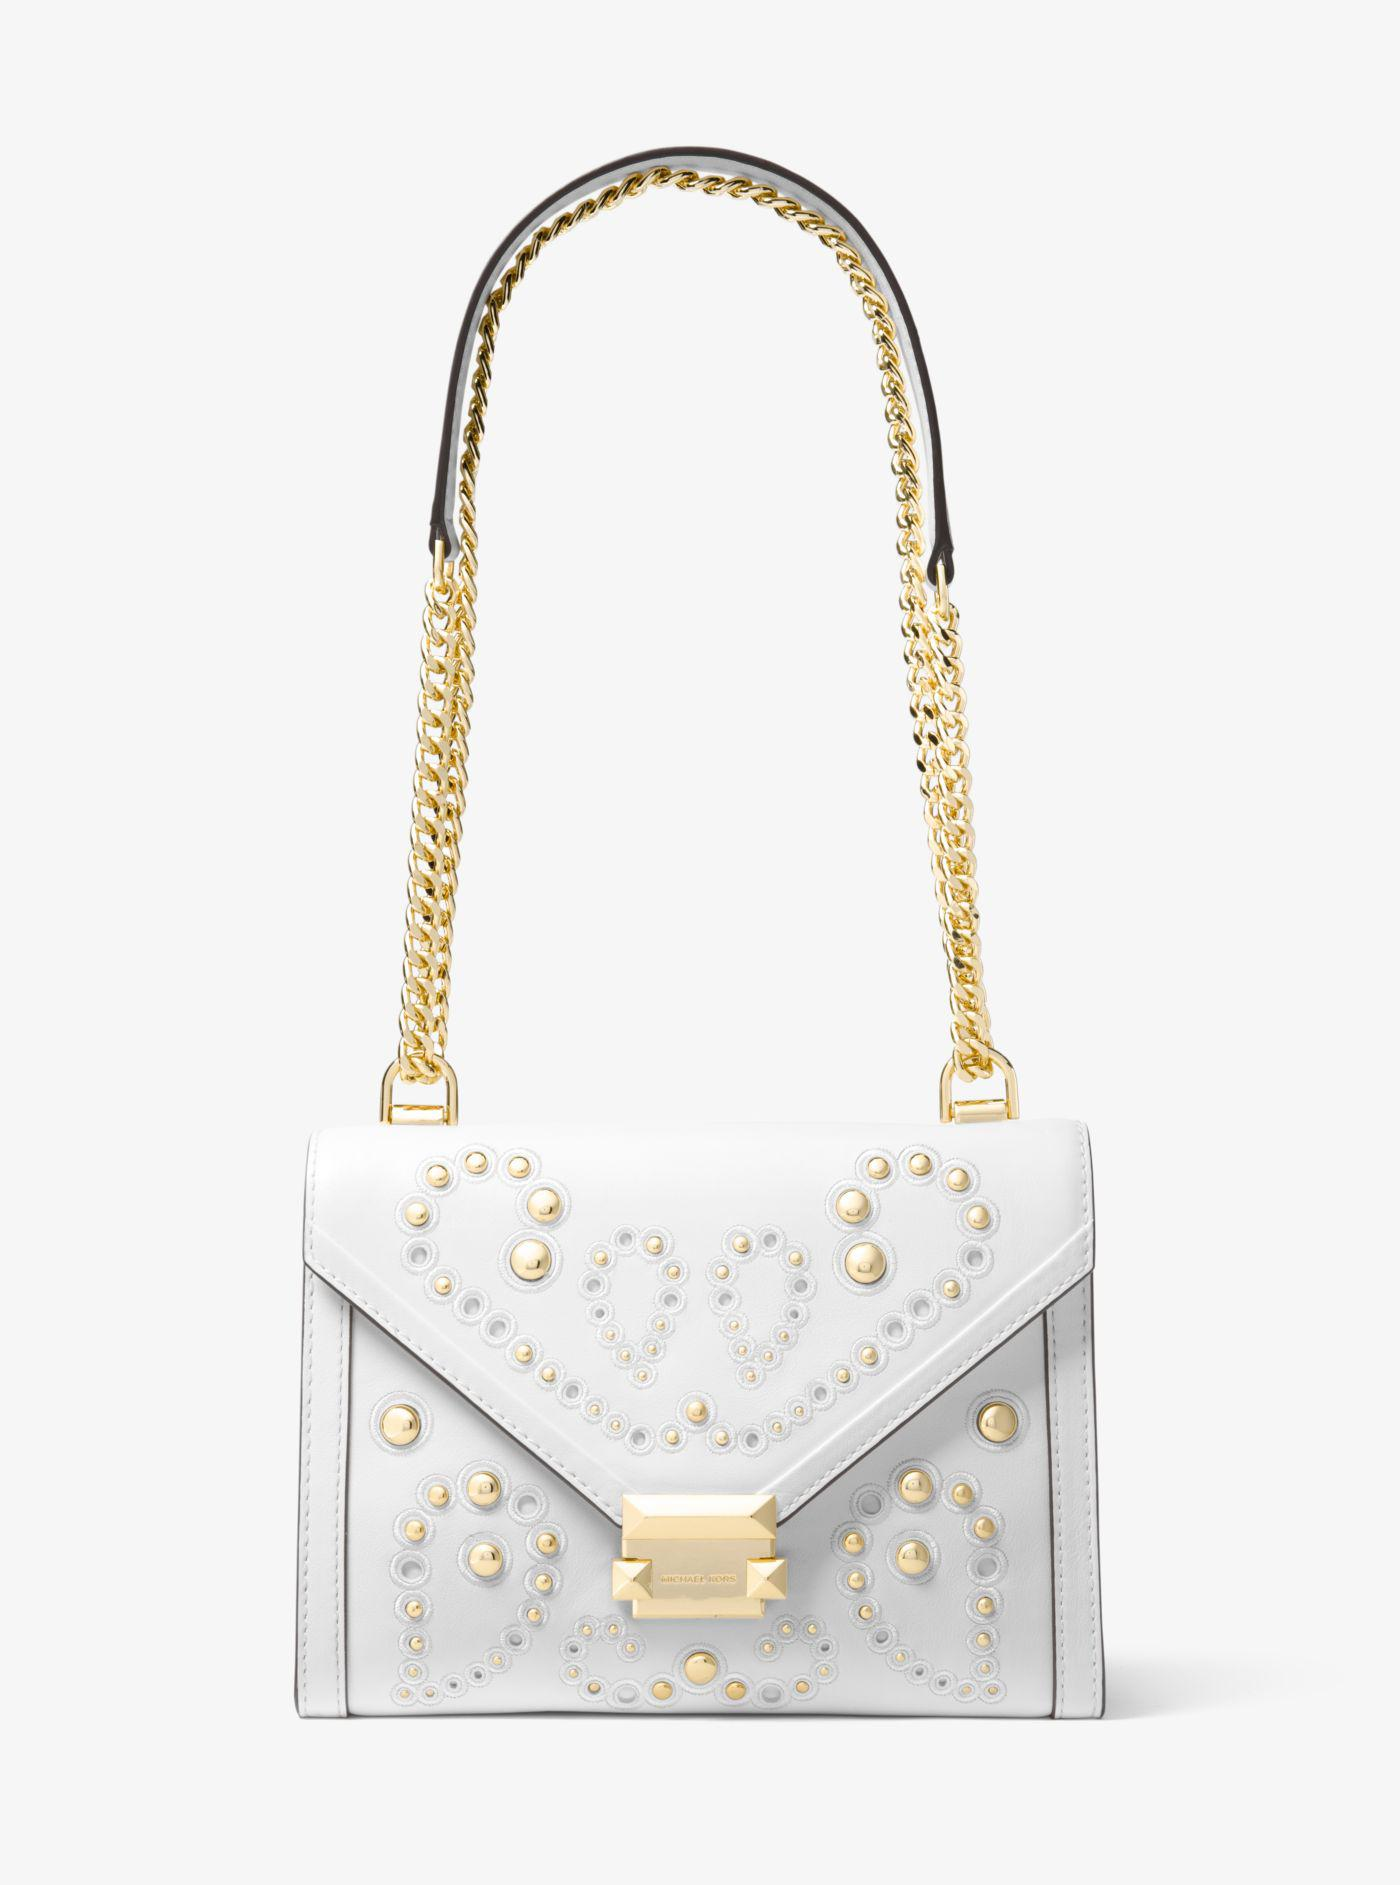 3dc9e5594c65 Lyst - Michael Kors Whitney Large Embellished Leather Convertible ...